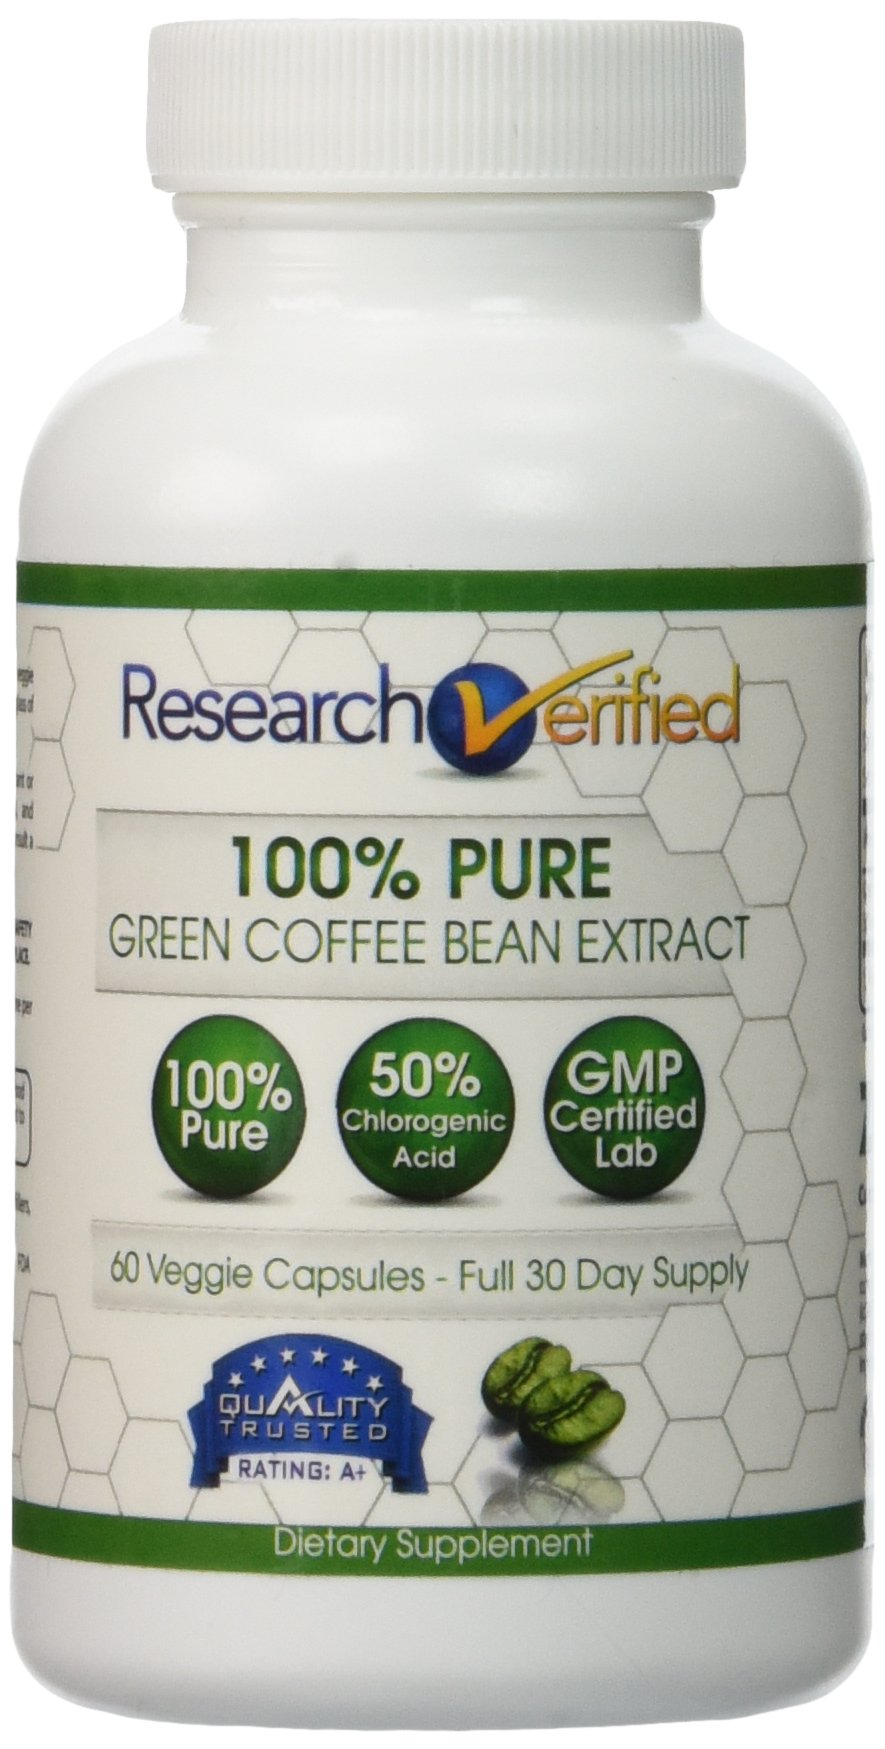 Green Coffee Bean Extract - One Month Supply - 100% Pure by Research Verified - 50% Chlorogenic Acid - 365 Day 100% Money Back Guarantee - Try Risk Free for Fast and Easy Weight Loss by Research Verified (Image #2)